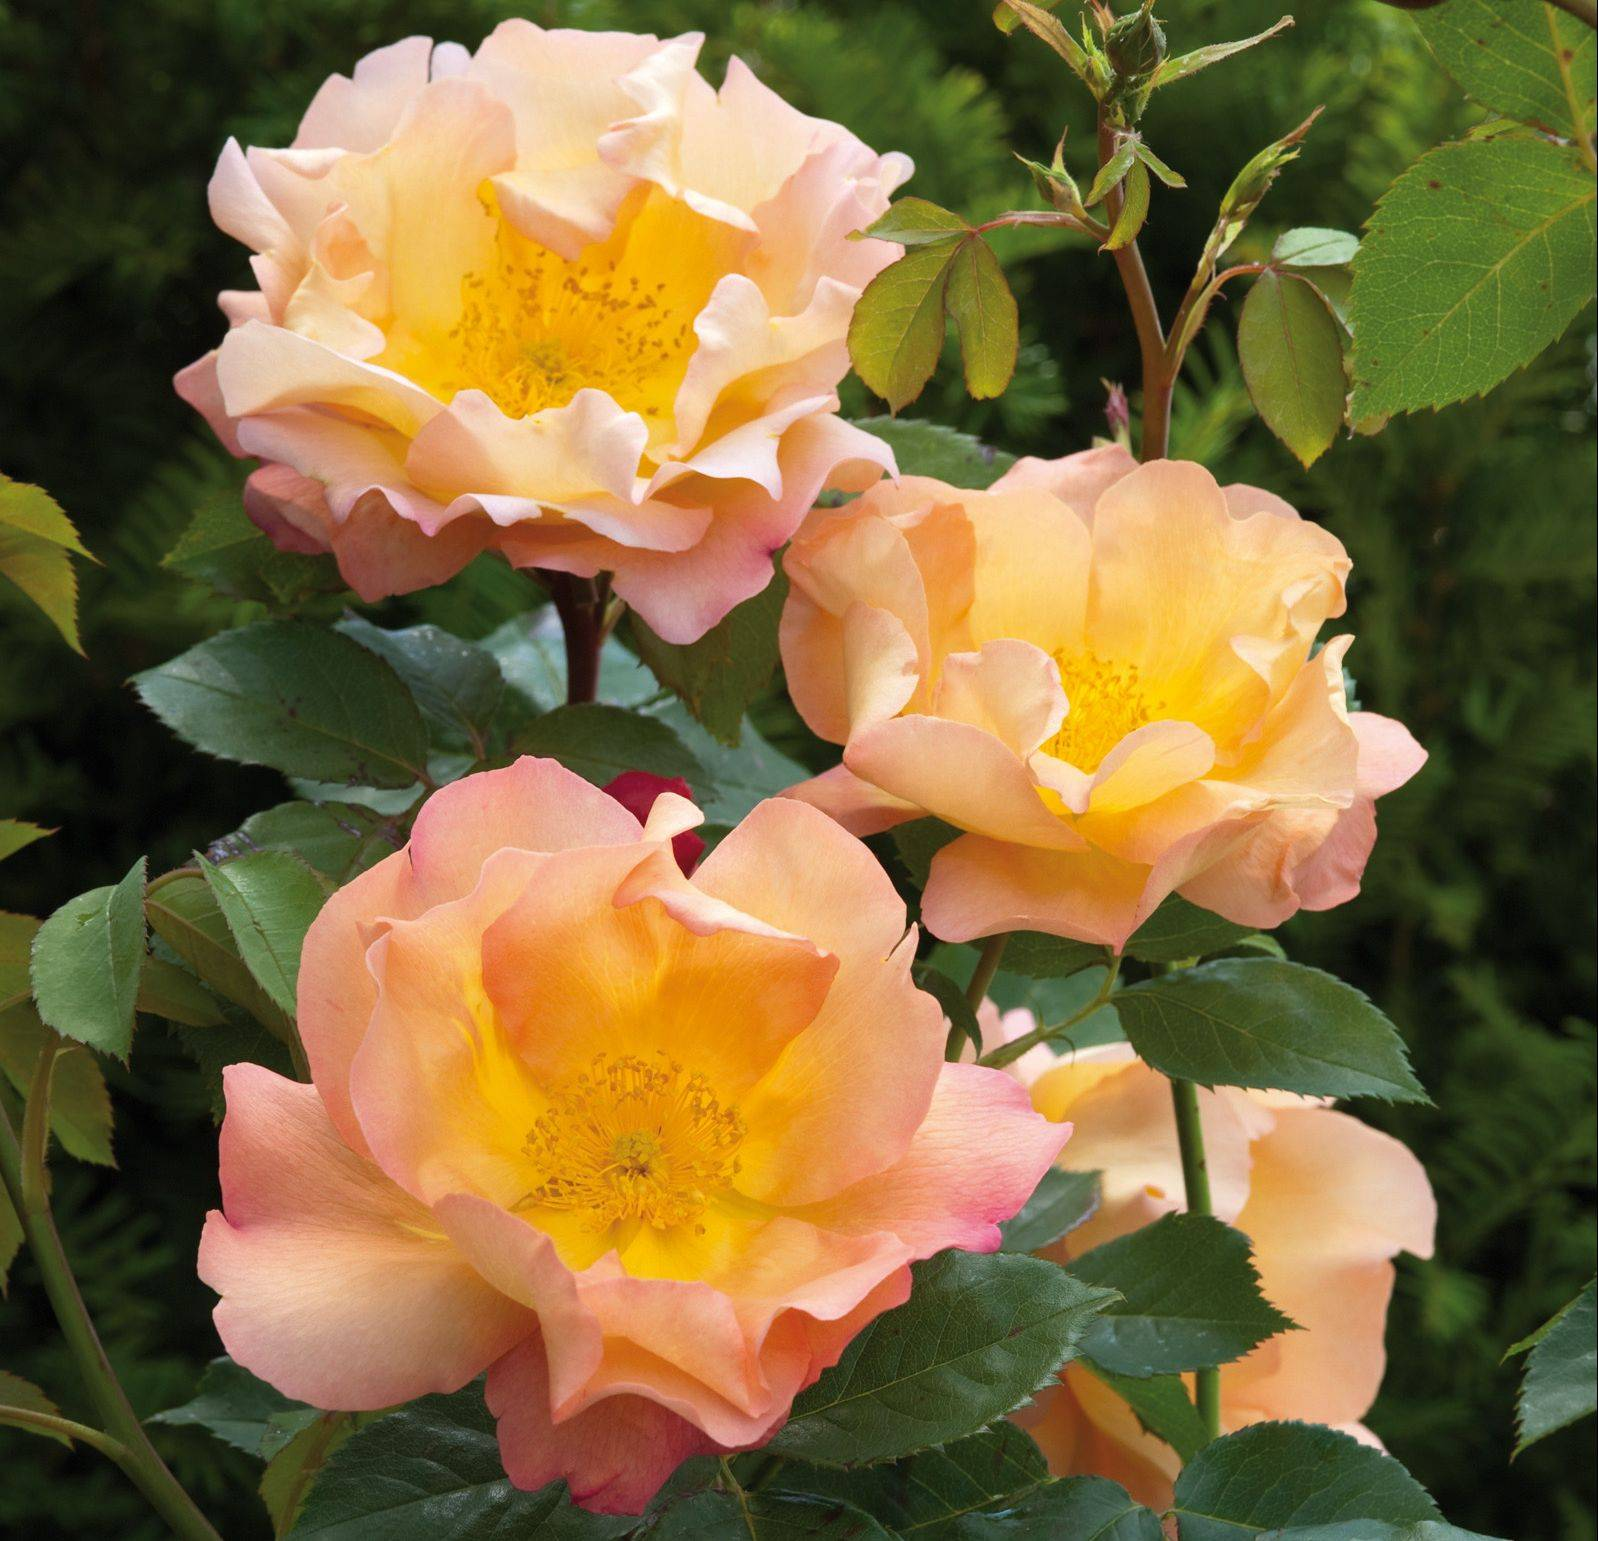 Fighting Temeraire is creamy apricot in color, with 12 petals up to 5 inches across with a strong lemon zest scent.